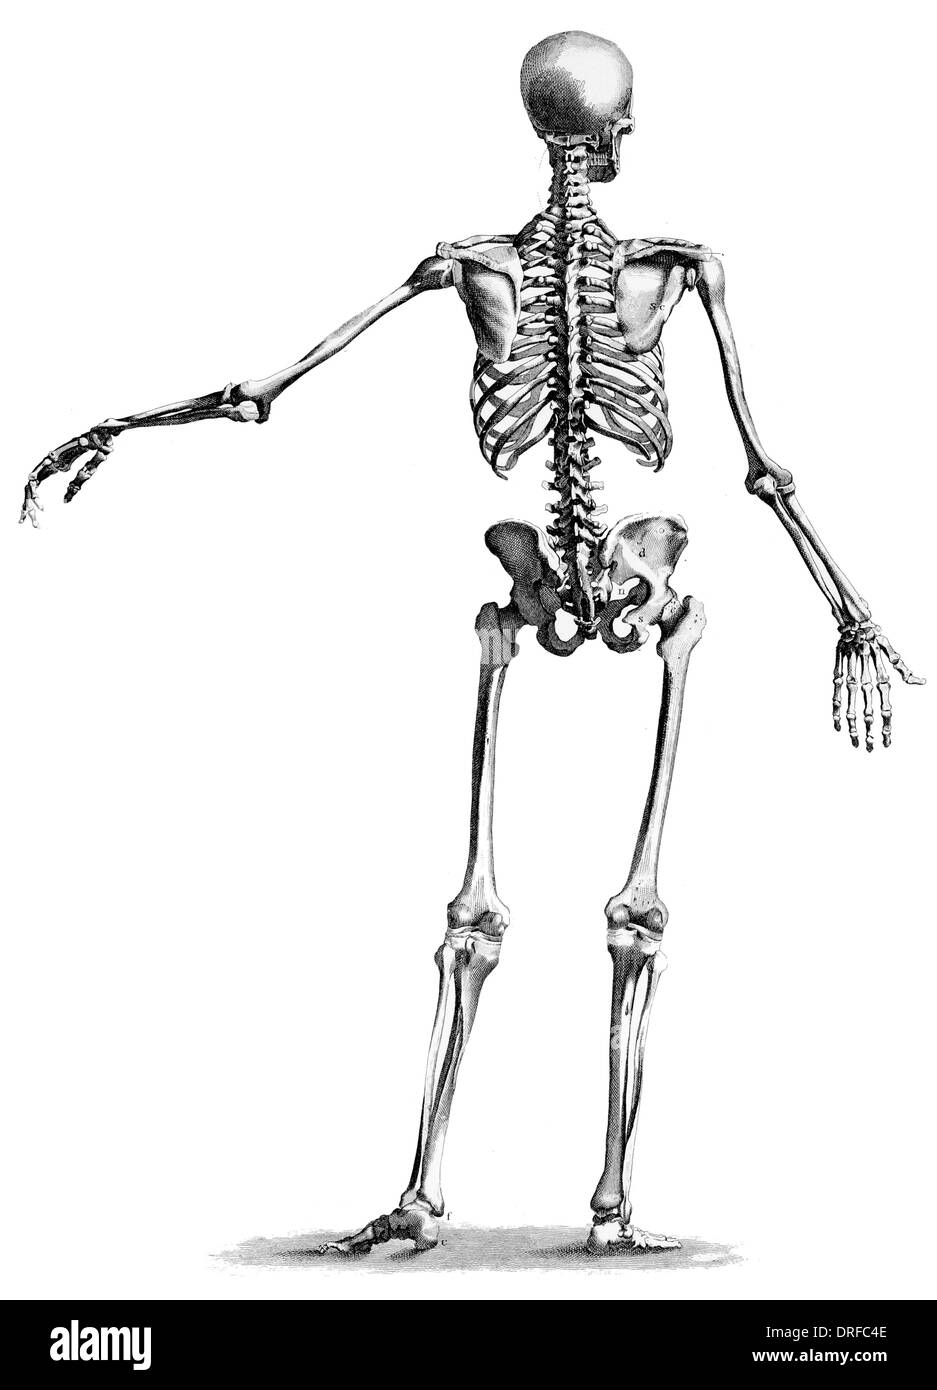 back rear view standing skeleton of human body - Stock Image